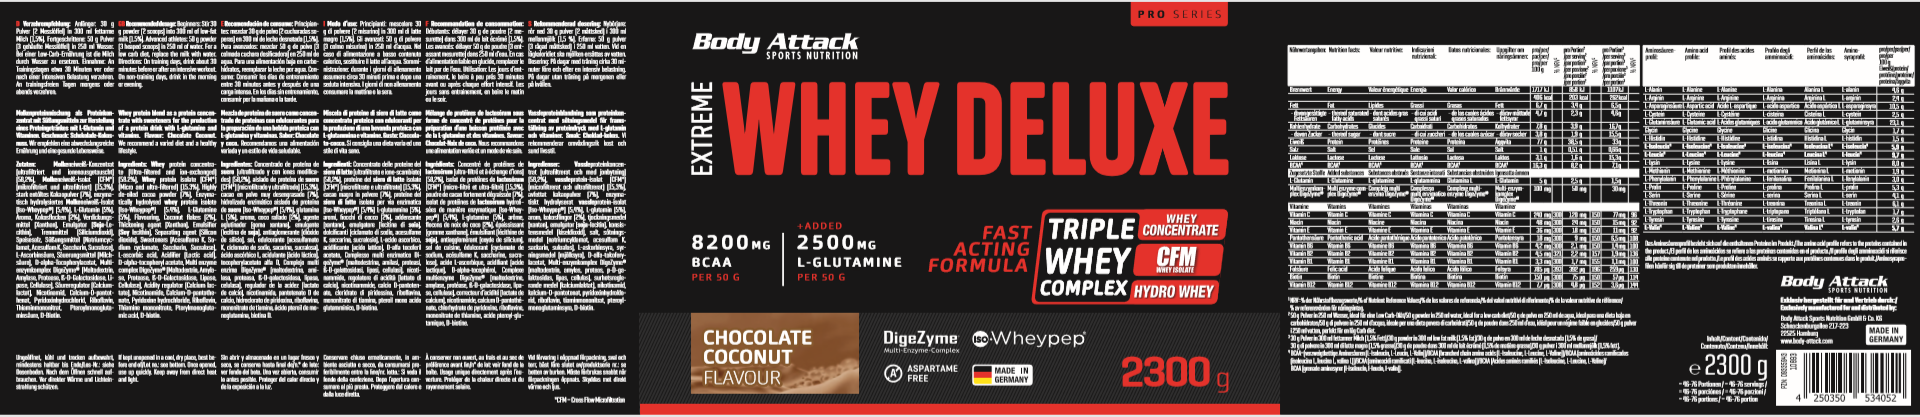 Body Attack Extreme Whey Deluxe - 2,3 kg Chocolate Coconut